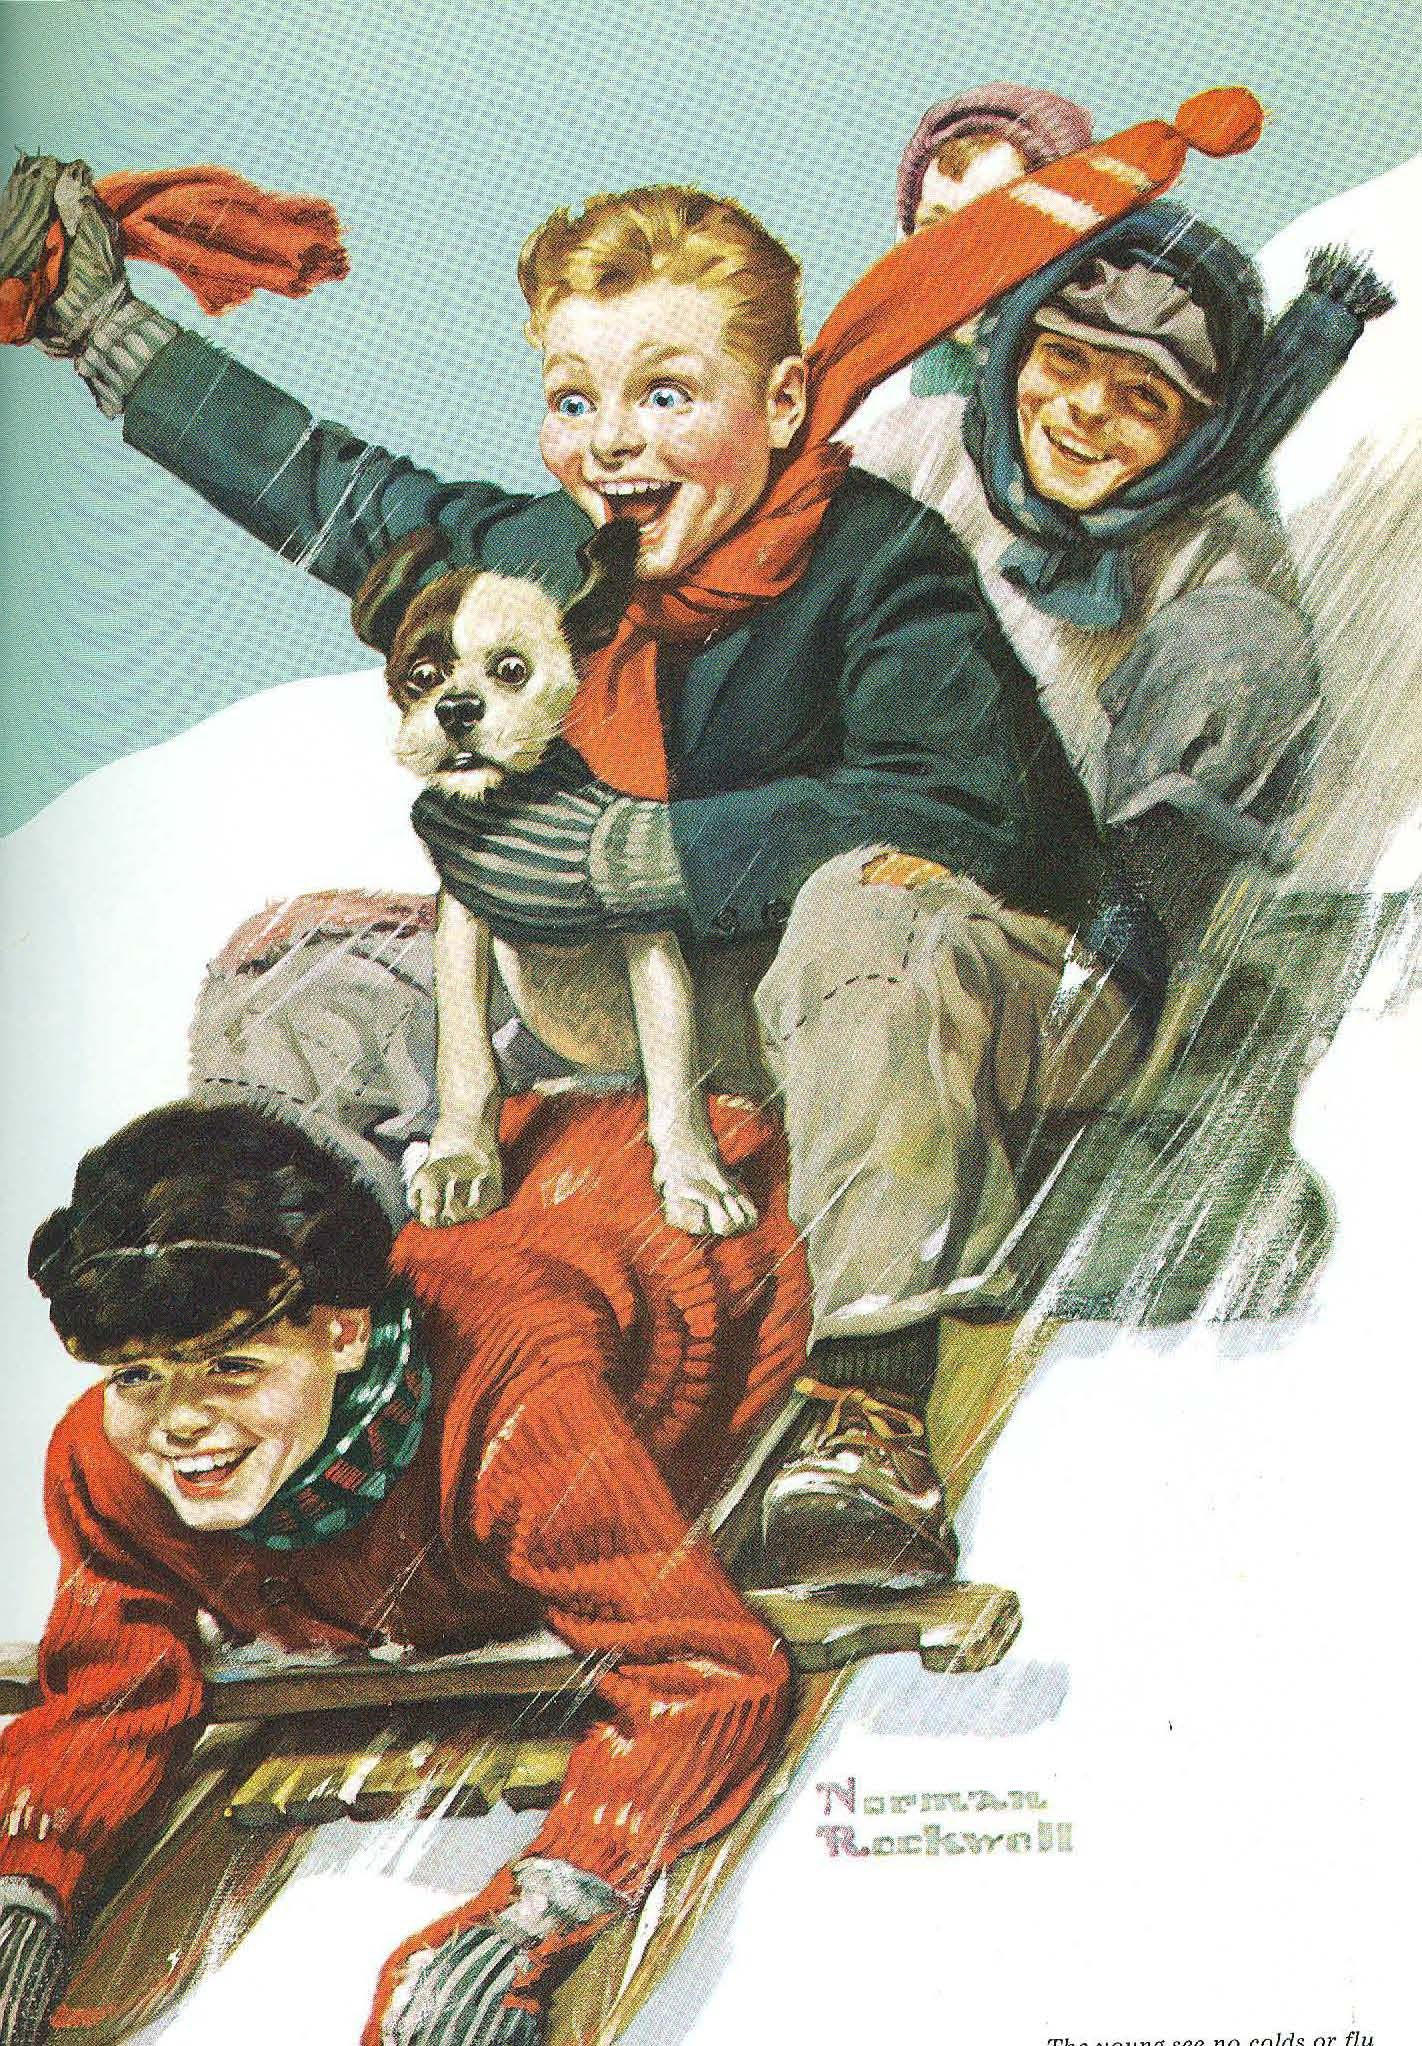 I love old fashioned Christmas drawings. the kid holding the dog is ...